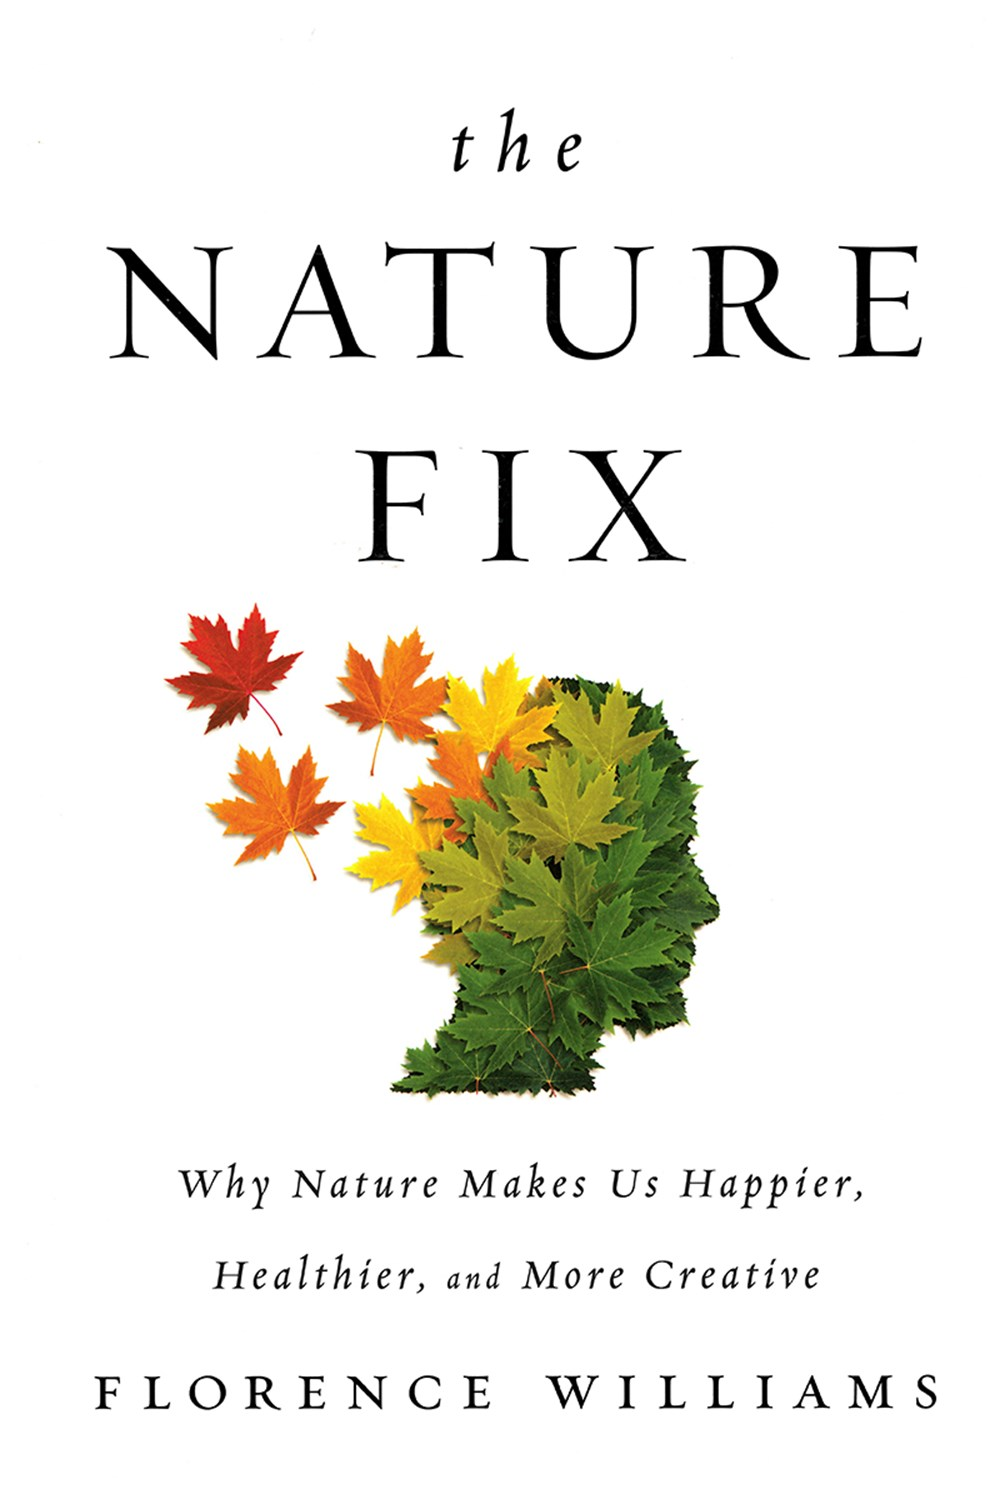 Nature Fix Why Nature Makes Us Happier, Healthier, and More Creative